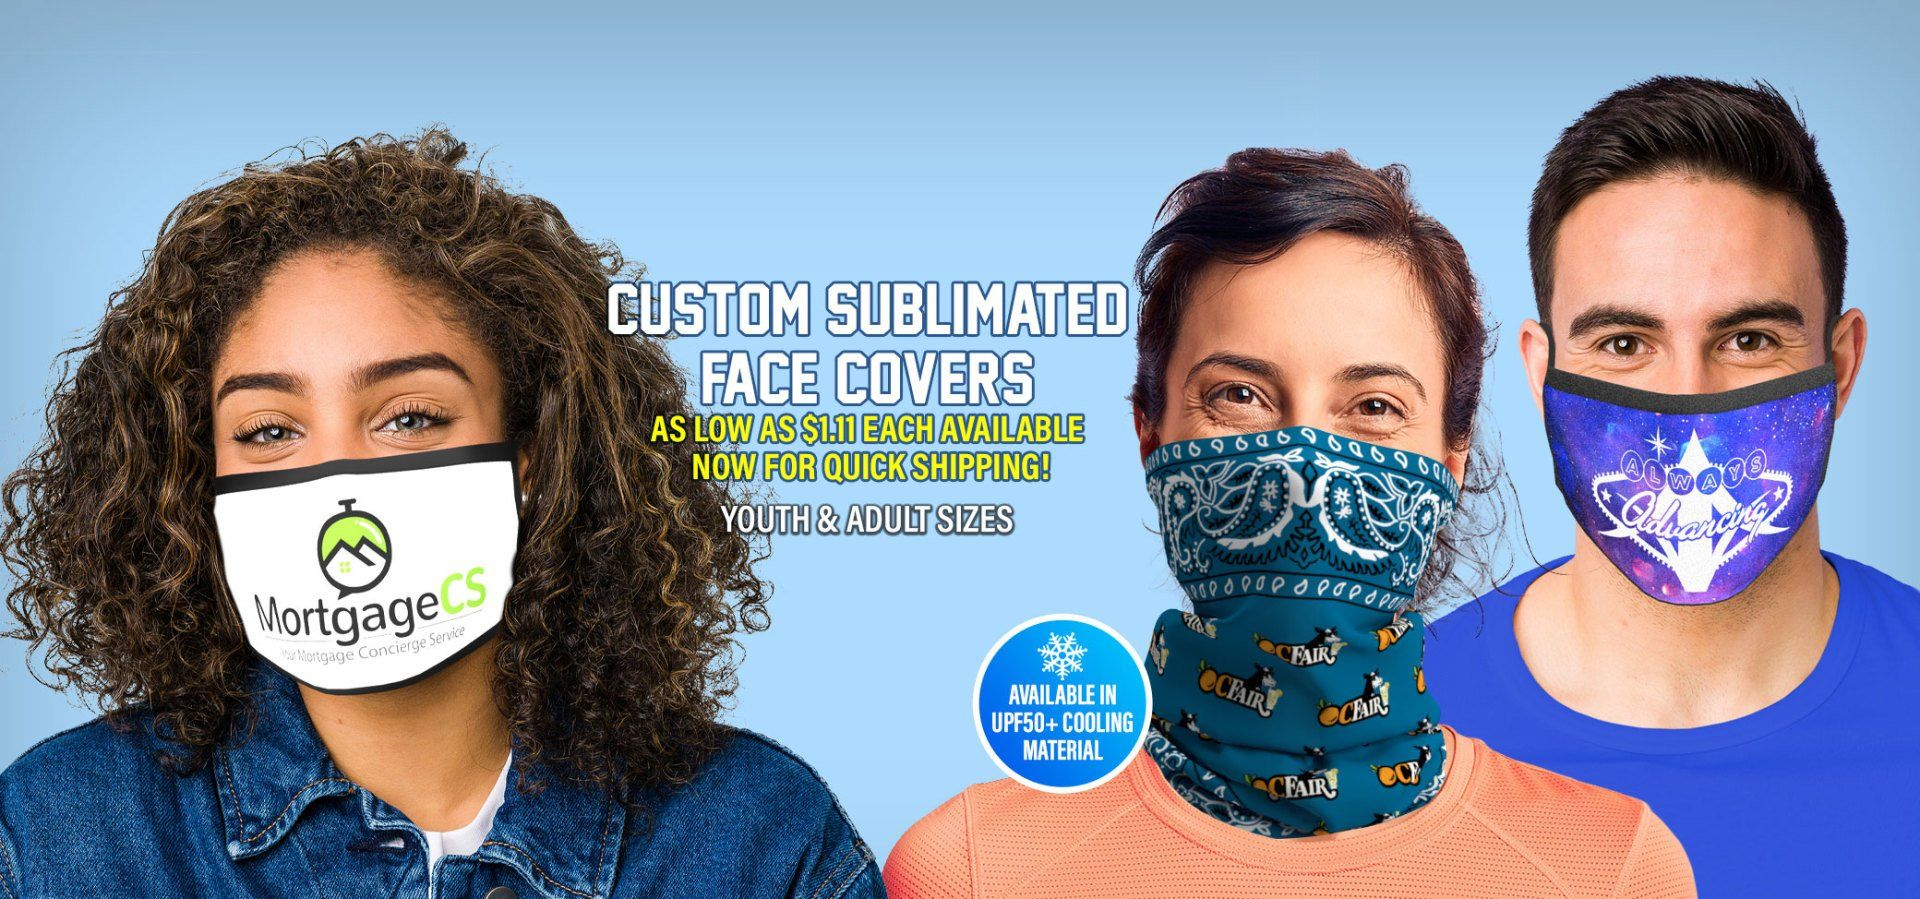 Custom Sublimated Face Covers